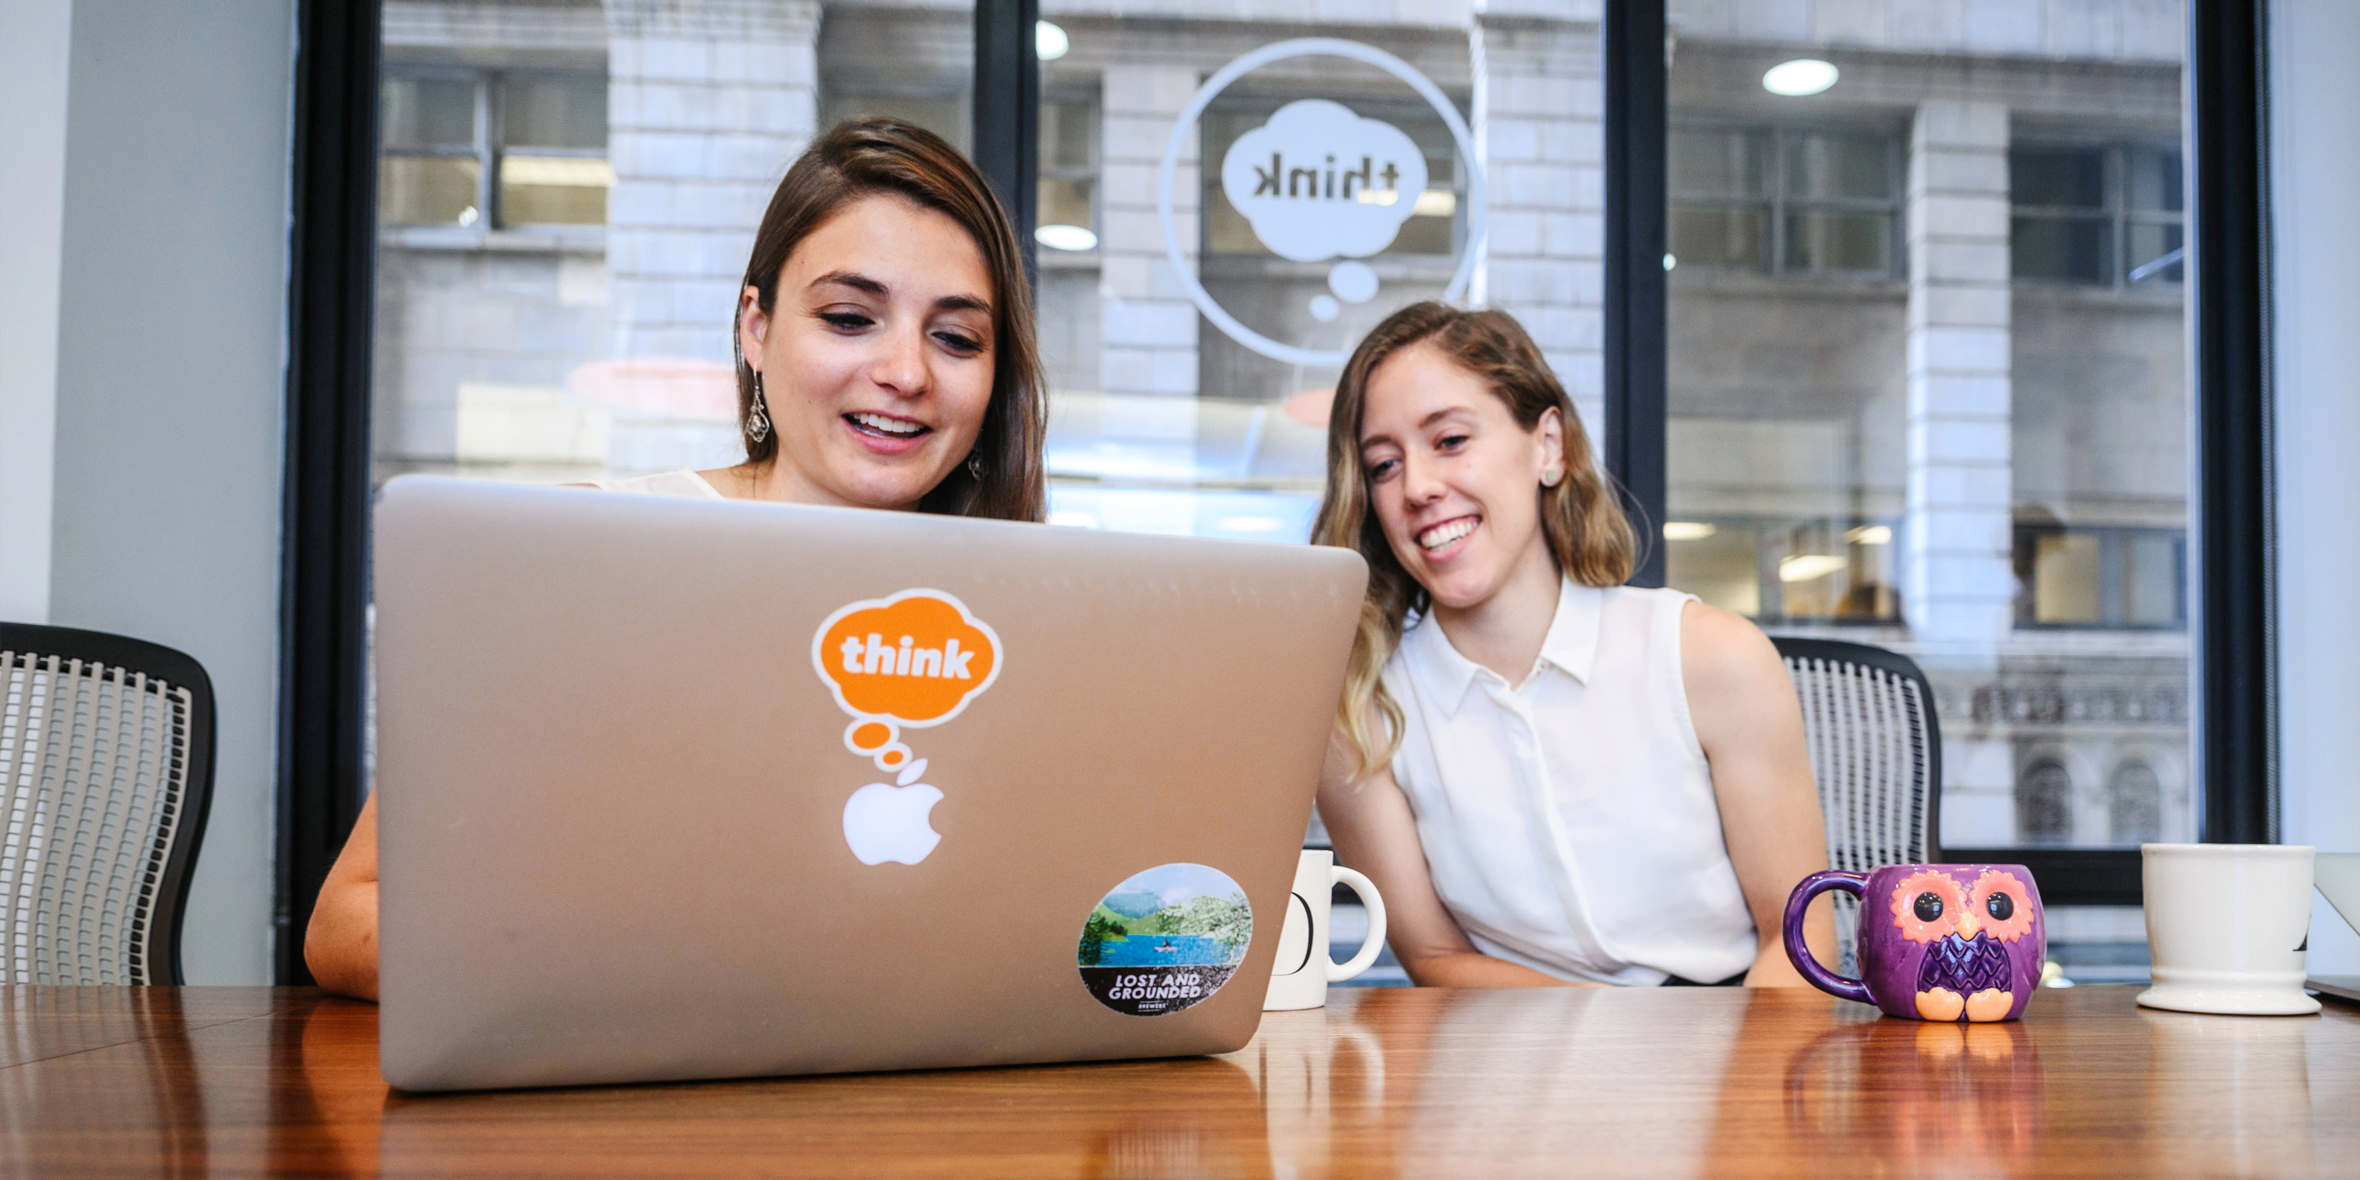 photo of two women looking at laptop